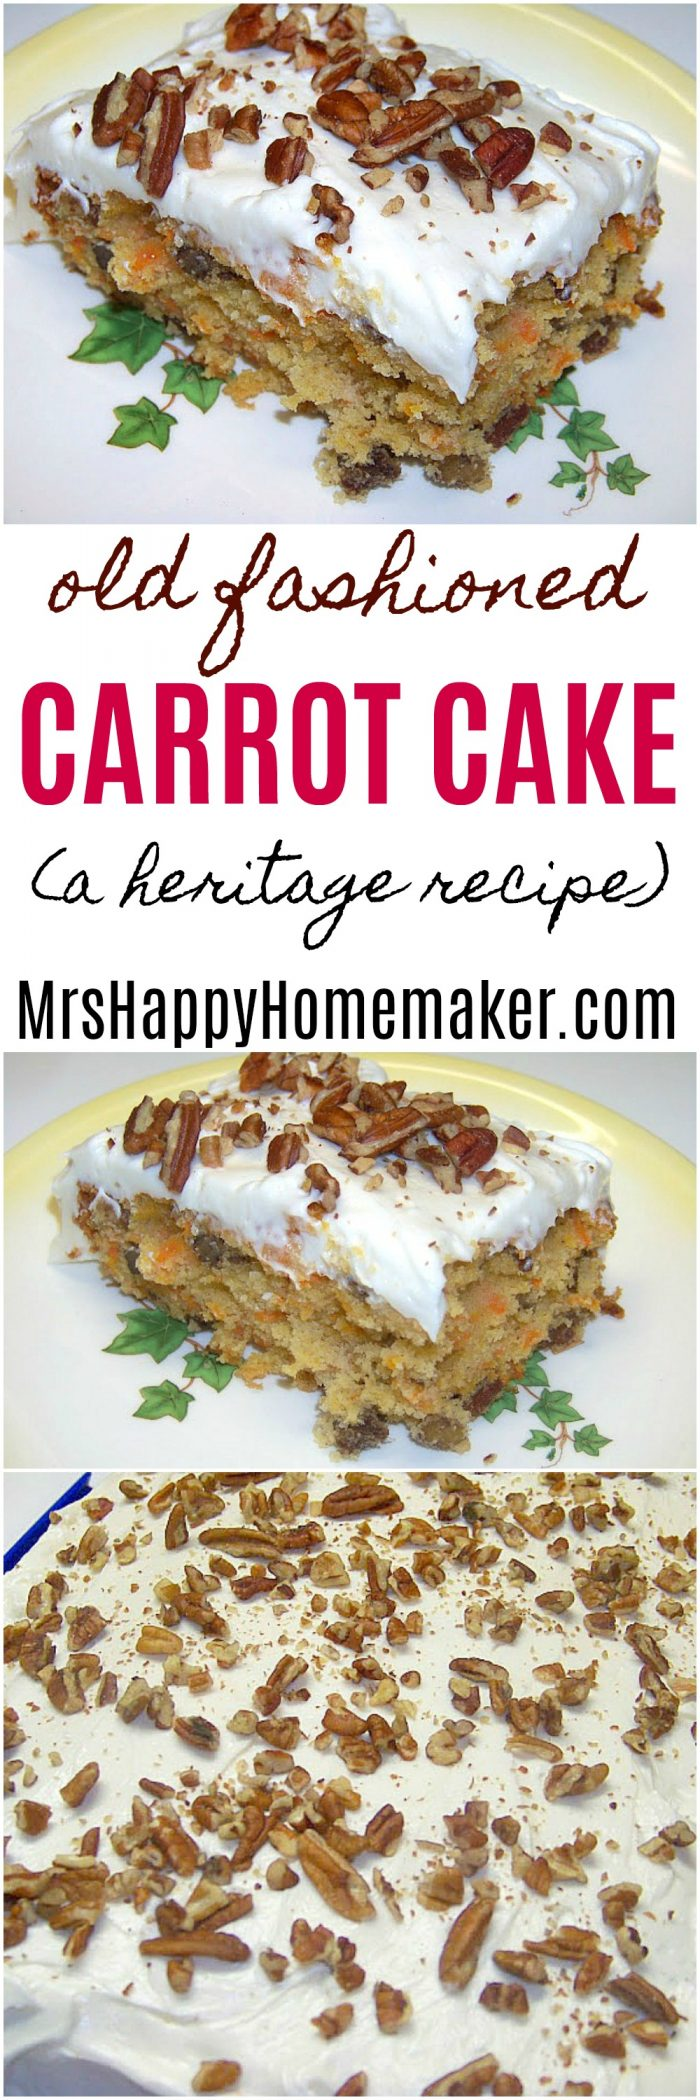 Carrot Cake a heritage recipe